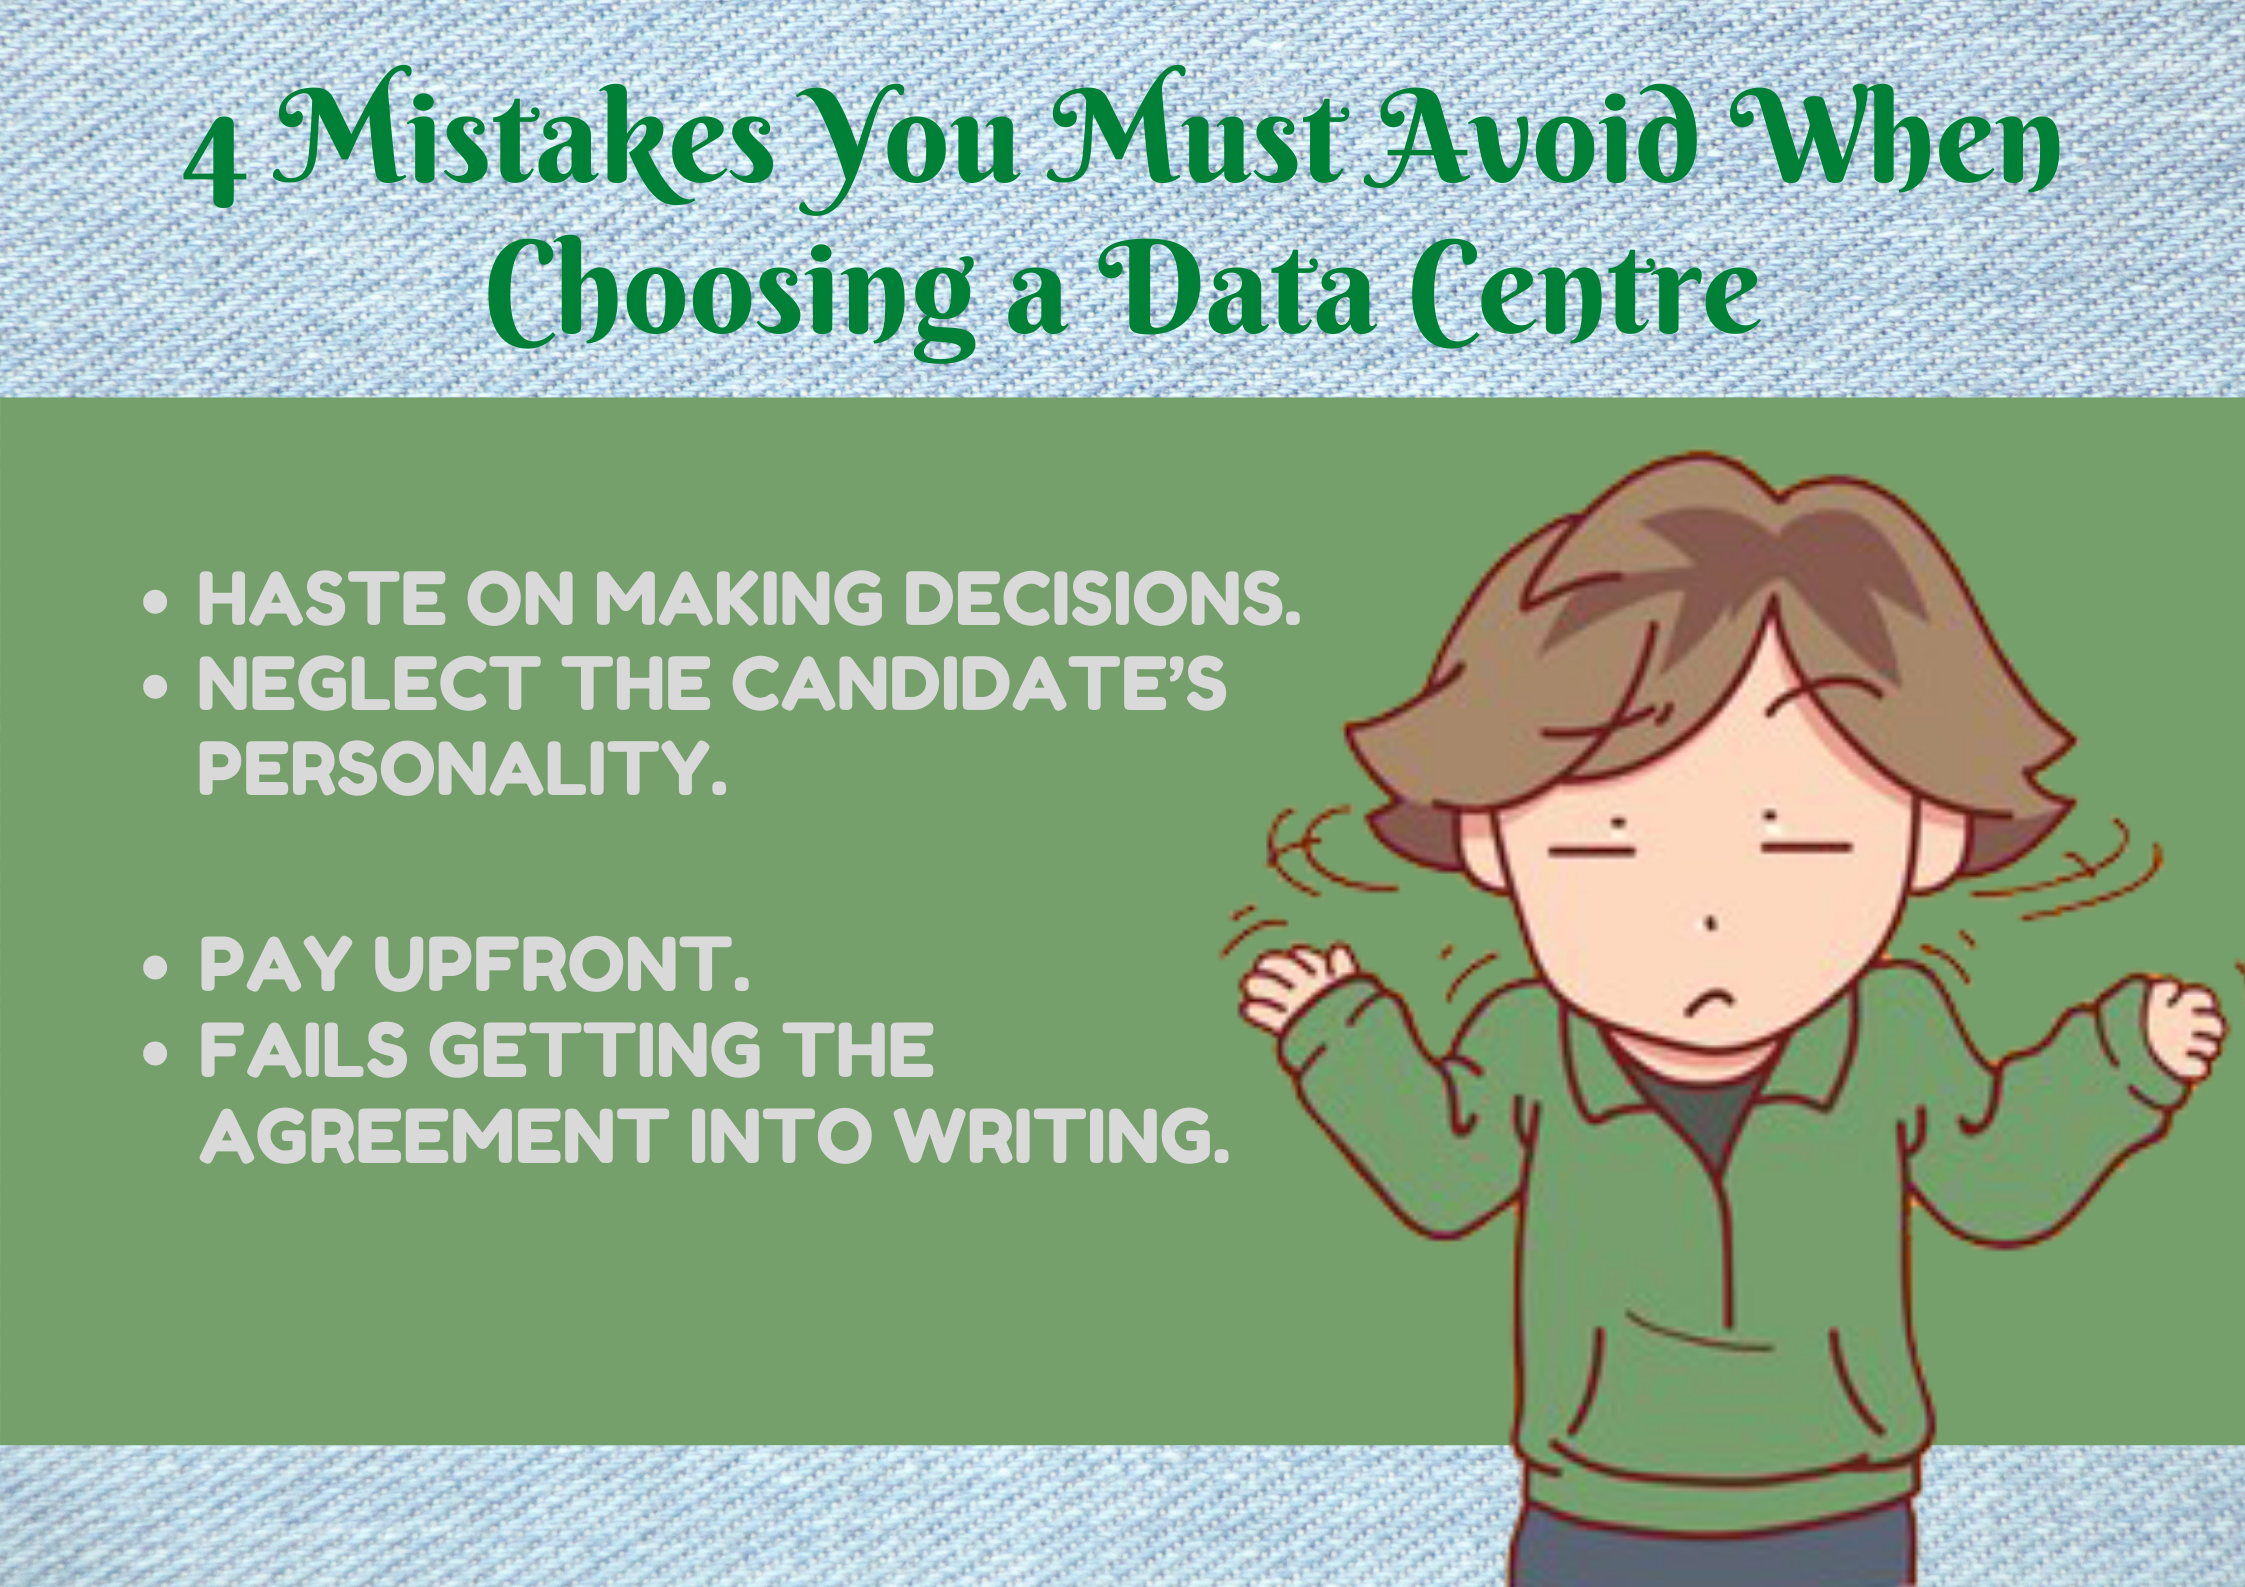 4-Mistakes-You-Must-Avoid-When-Choosing-a-Data-Centre